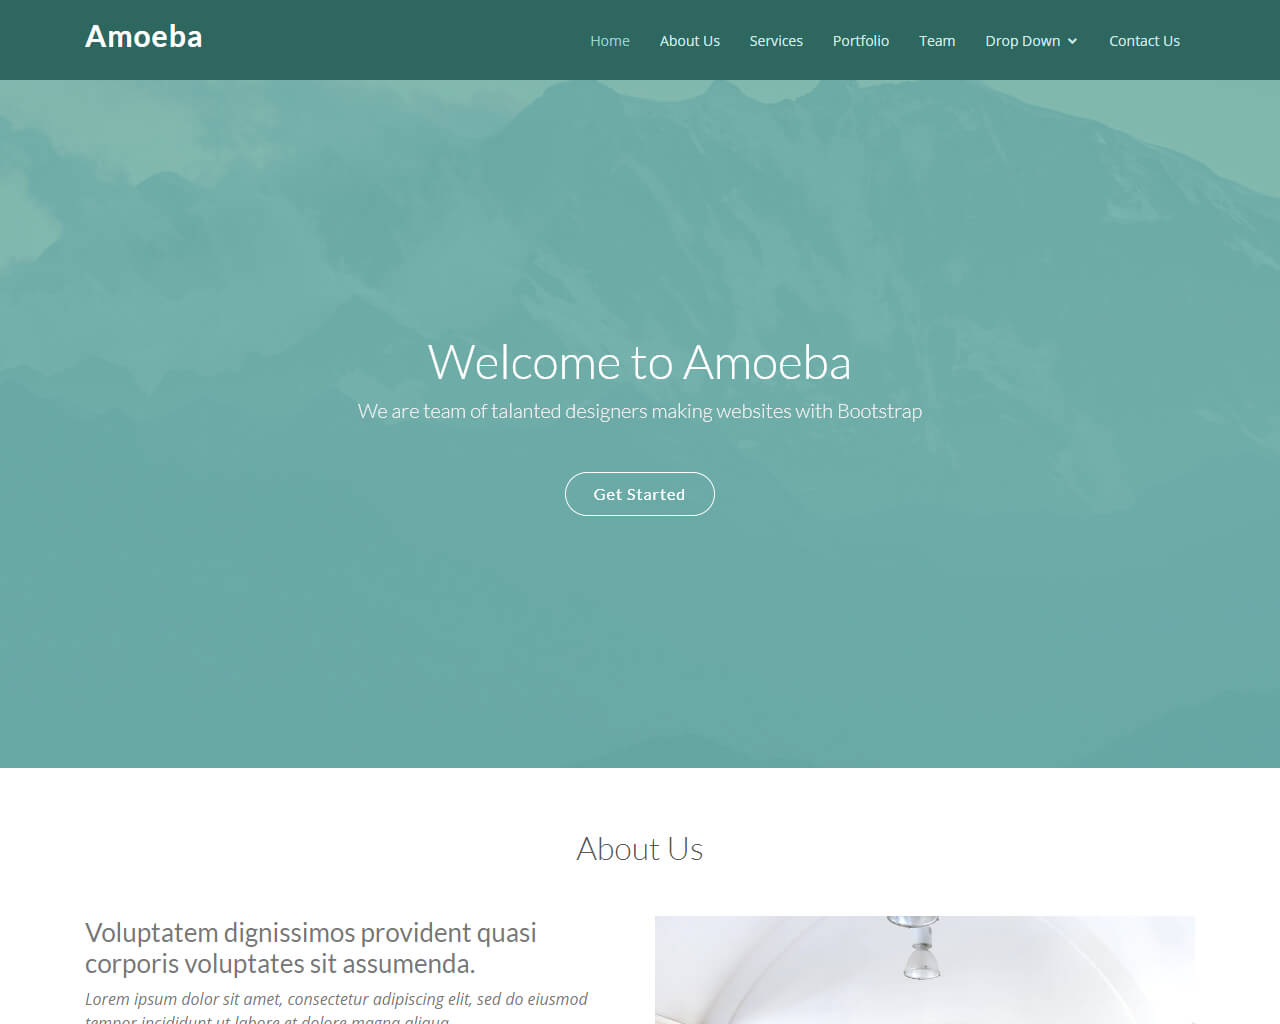 The Amoeba Free Bootstrap Template Is A Responsive Website Built With Html5 It Has Modern Flat Design Lots Of Premium Features